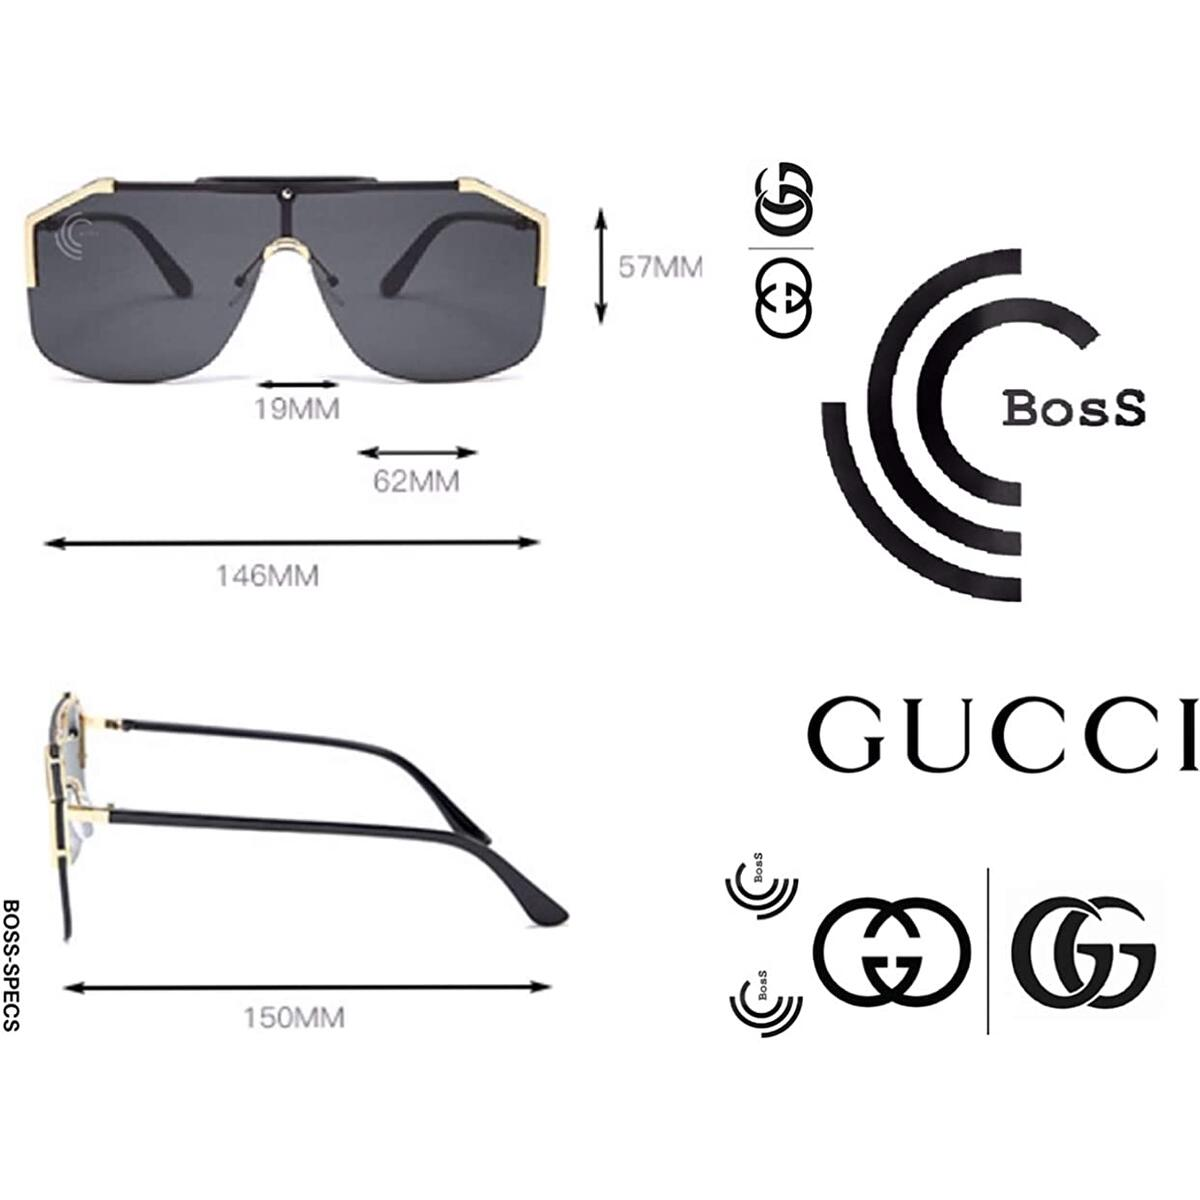 GIOVANNI by BOSS-SPECS